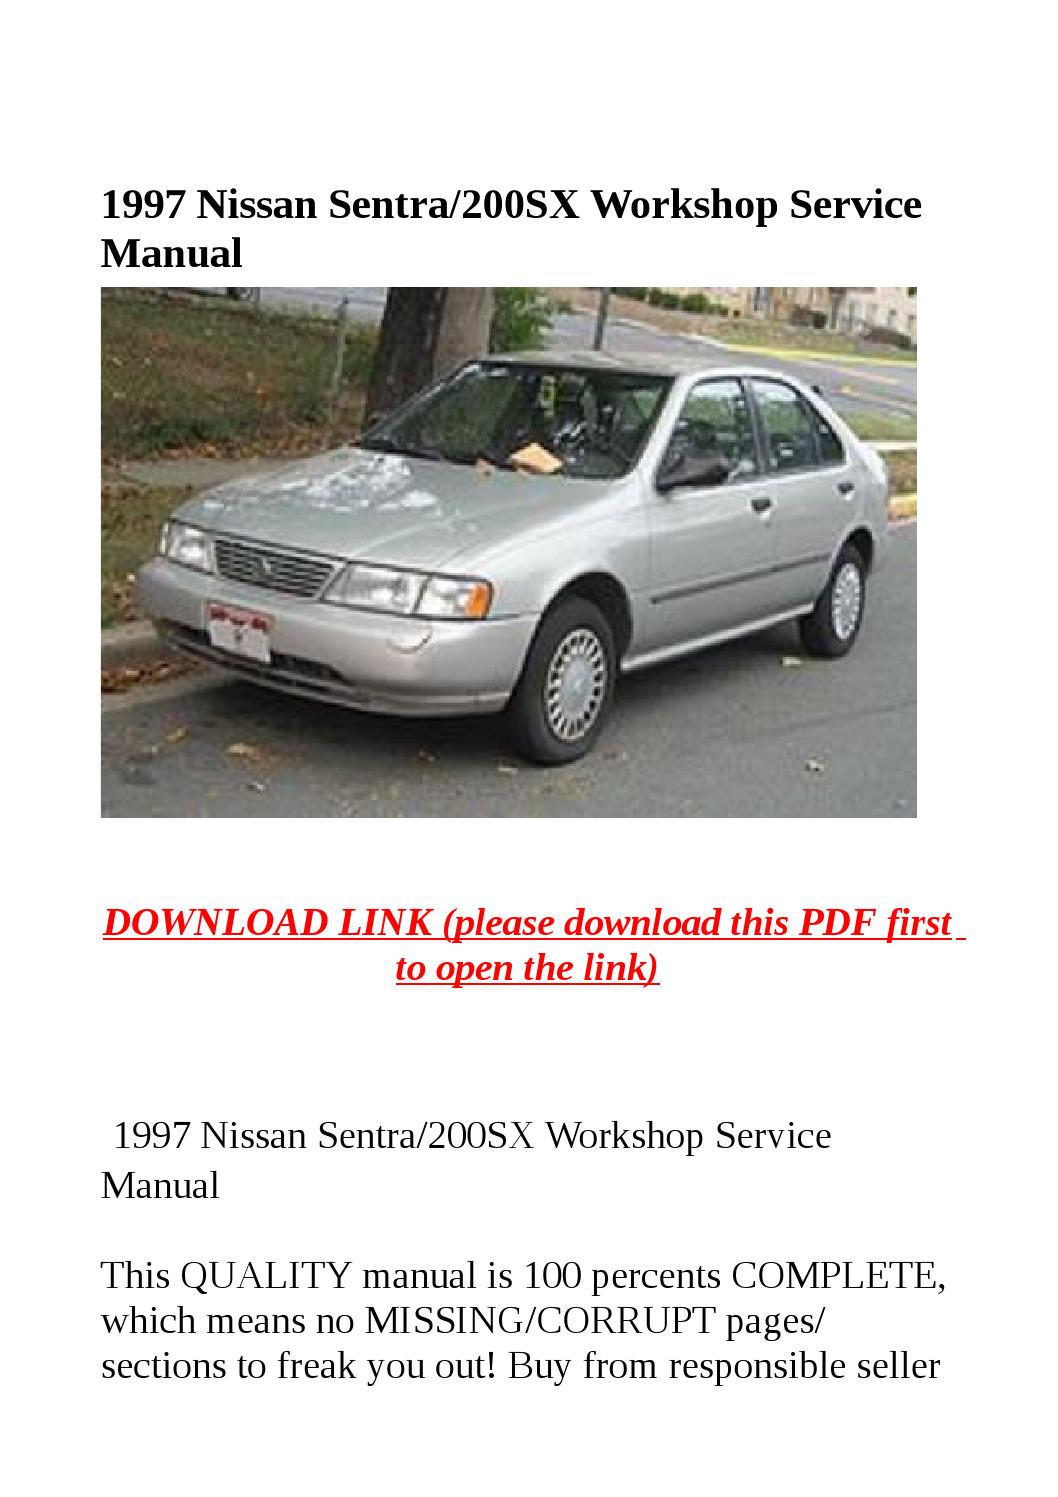 1997 nissan sentra service manual download